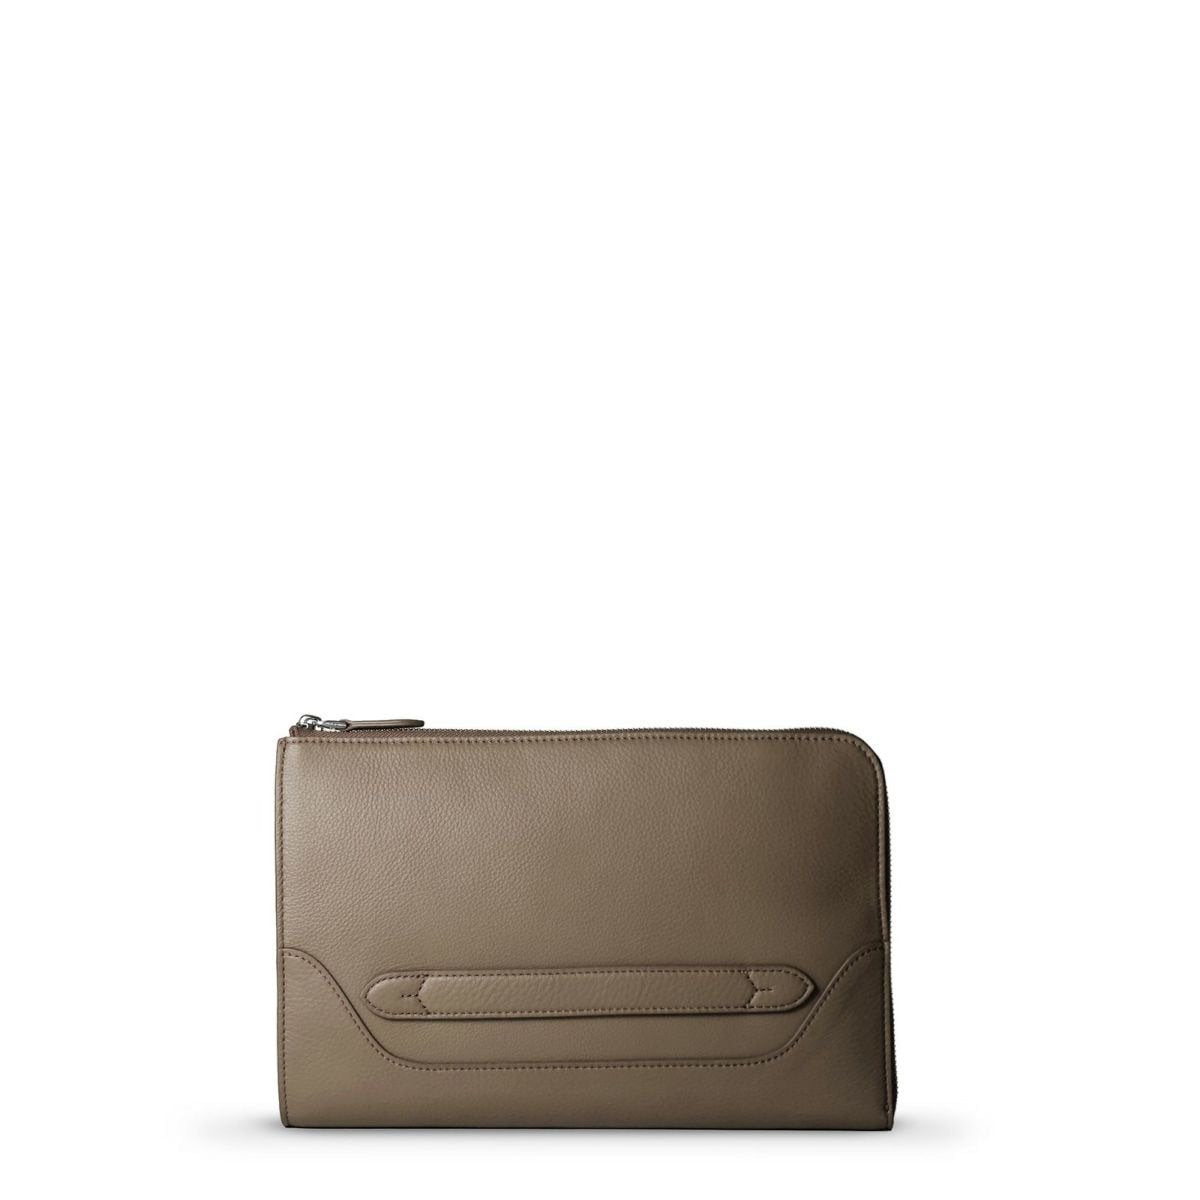 Pelle Morbido Taupe Leather Clutch Bag; MB058